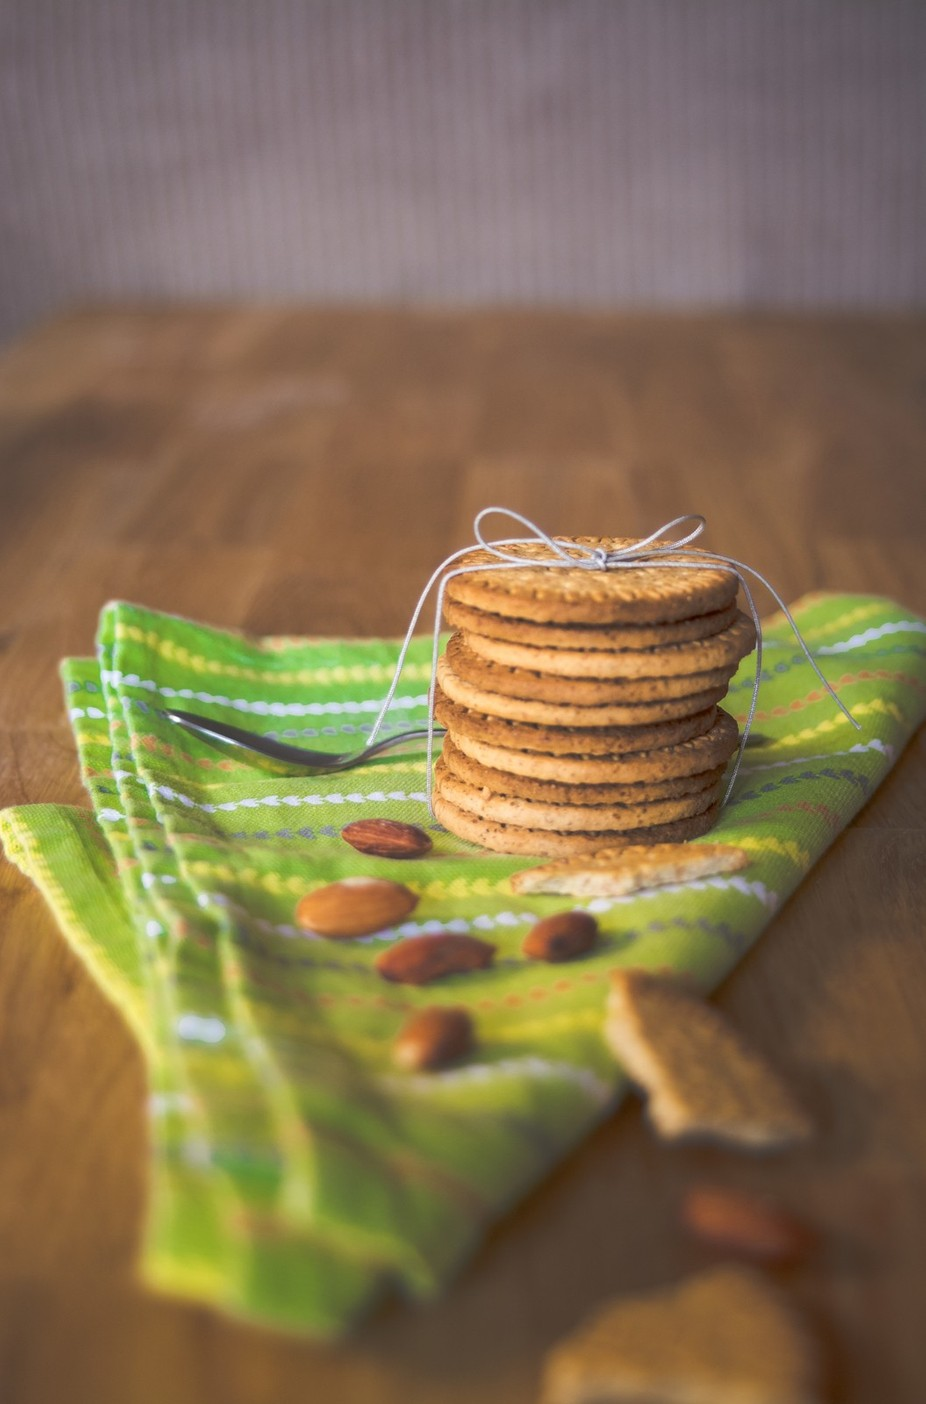 Rustic Biscuits by RosieF - Looks Delicious Photo Contest